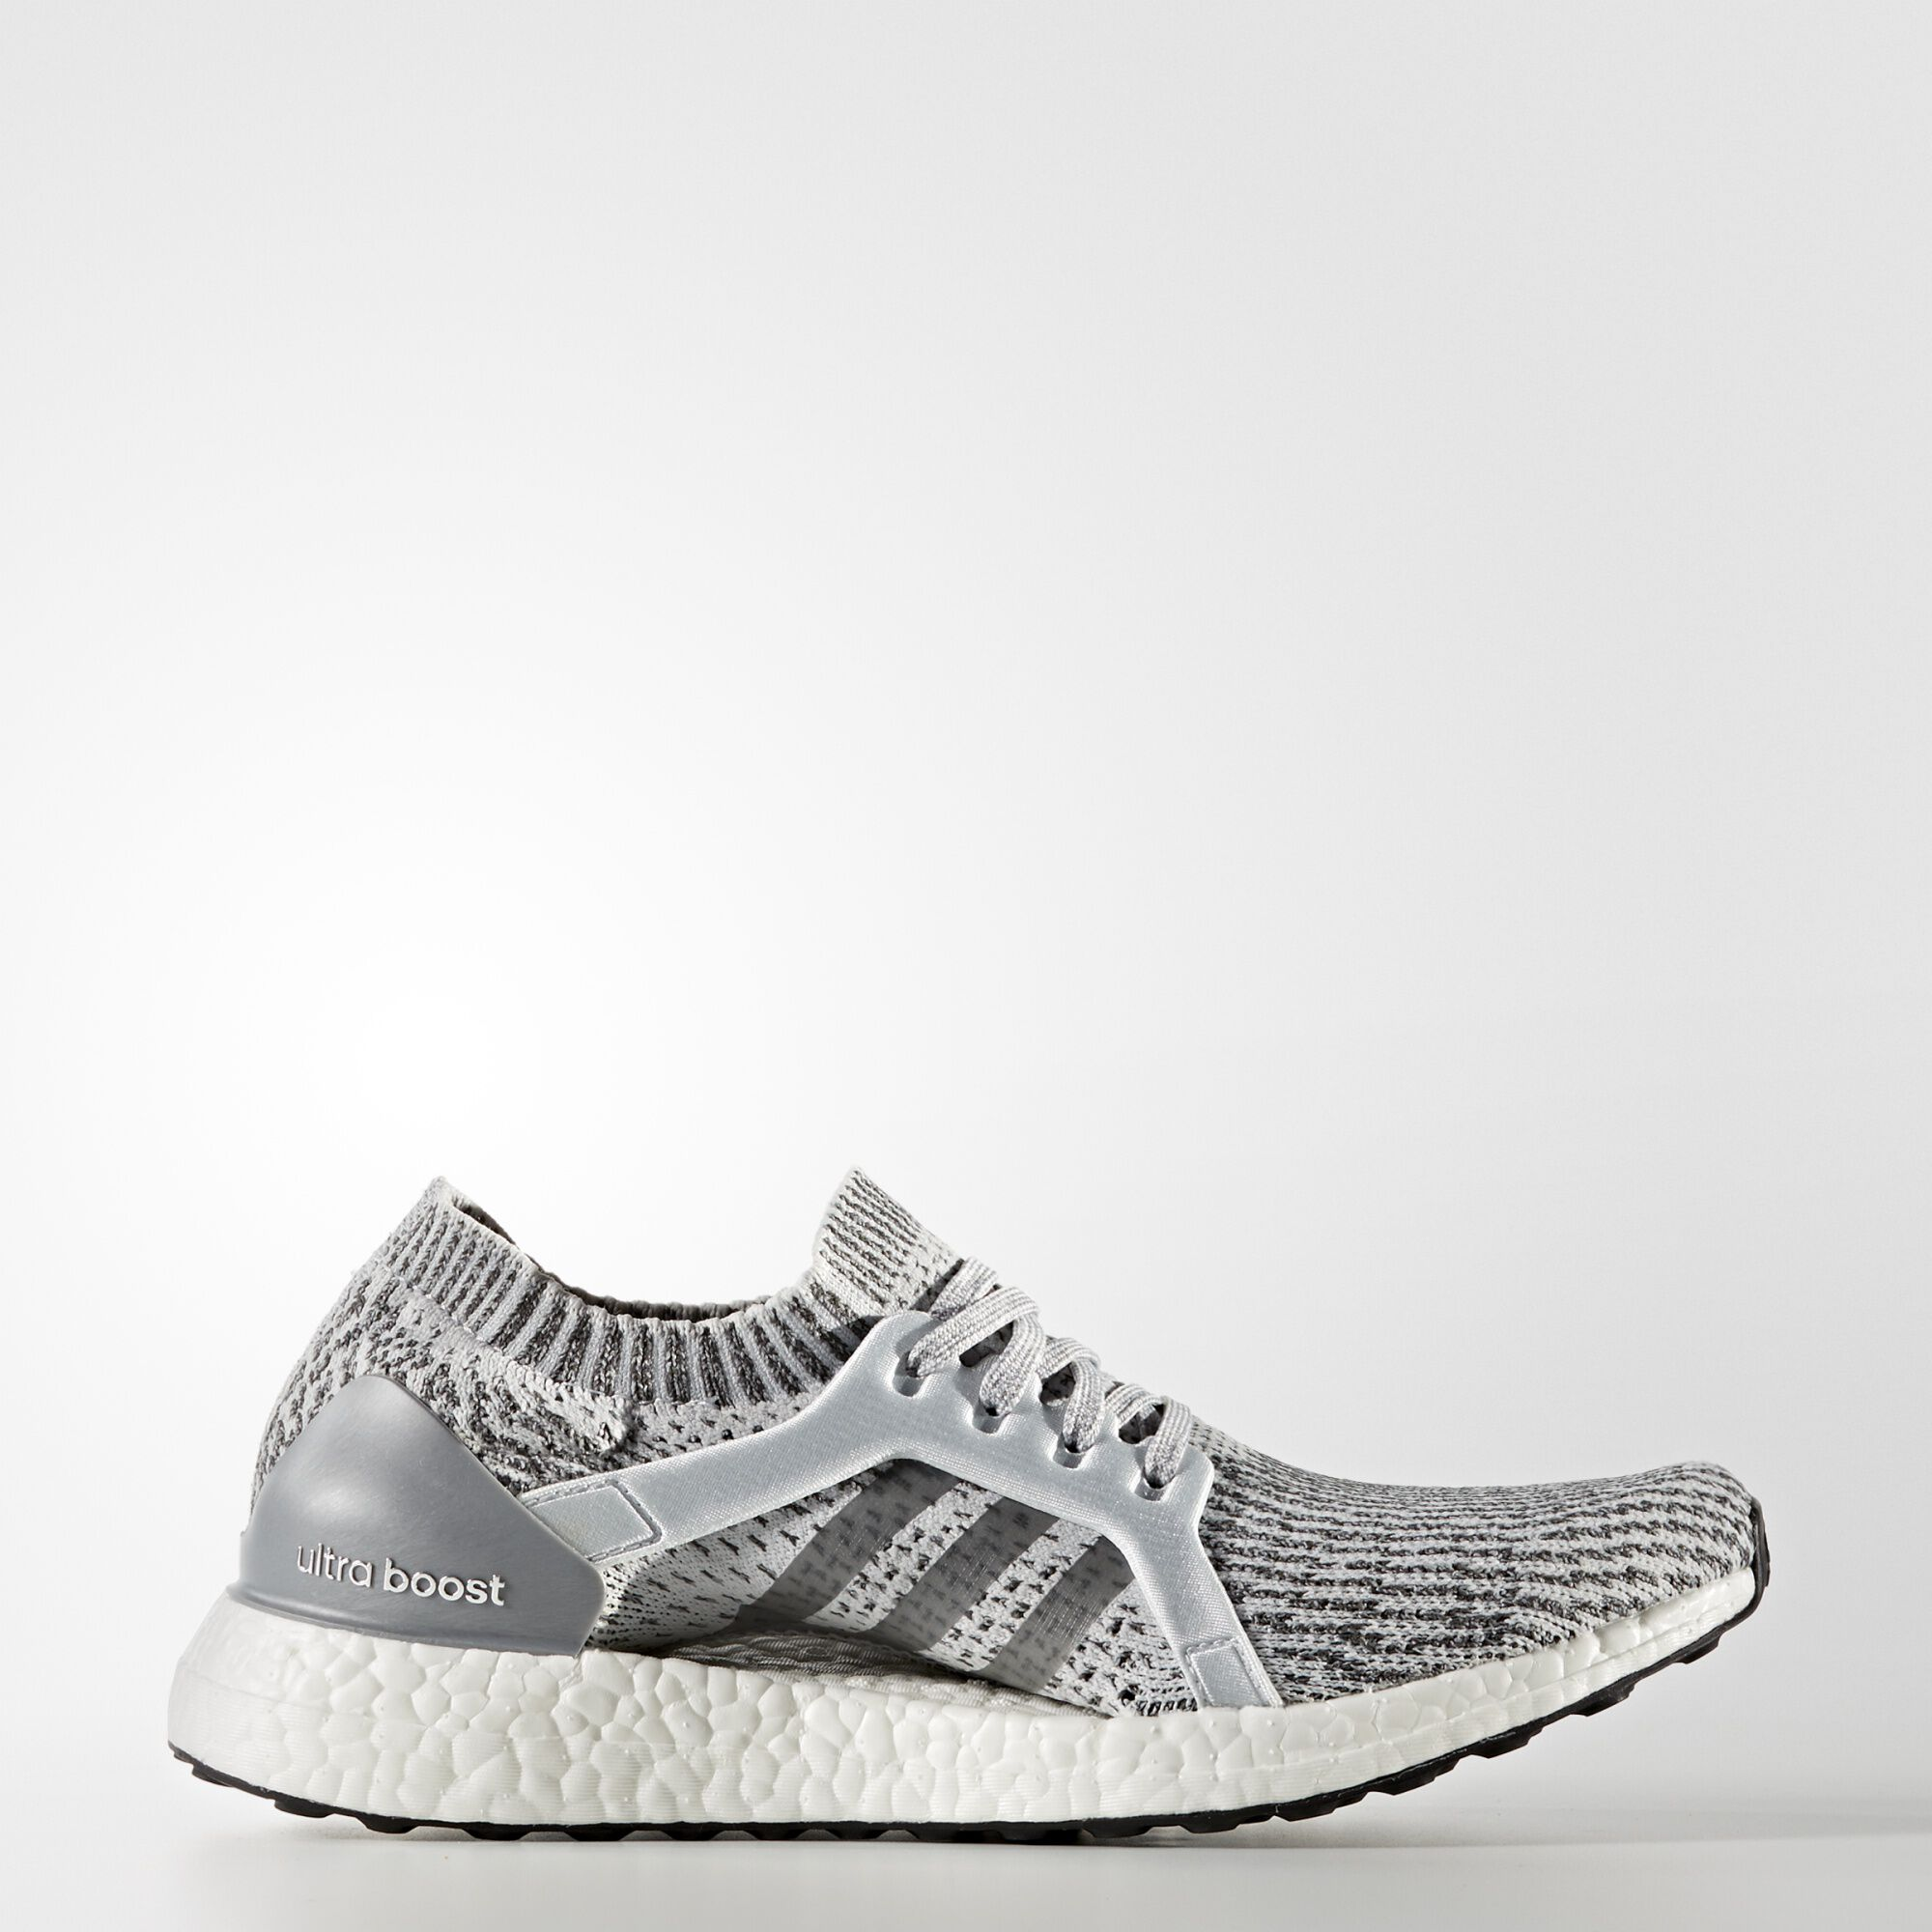 c3b591244 Adidas Ultra Boost Grey wallbank-lfc.co.uk